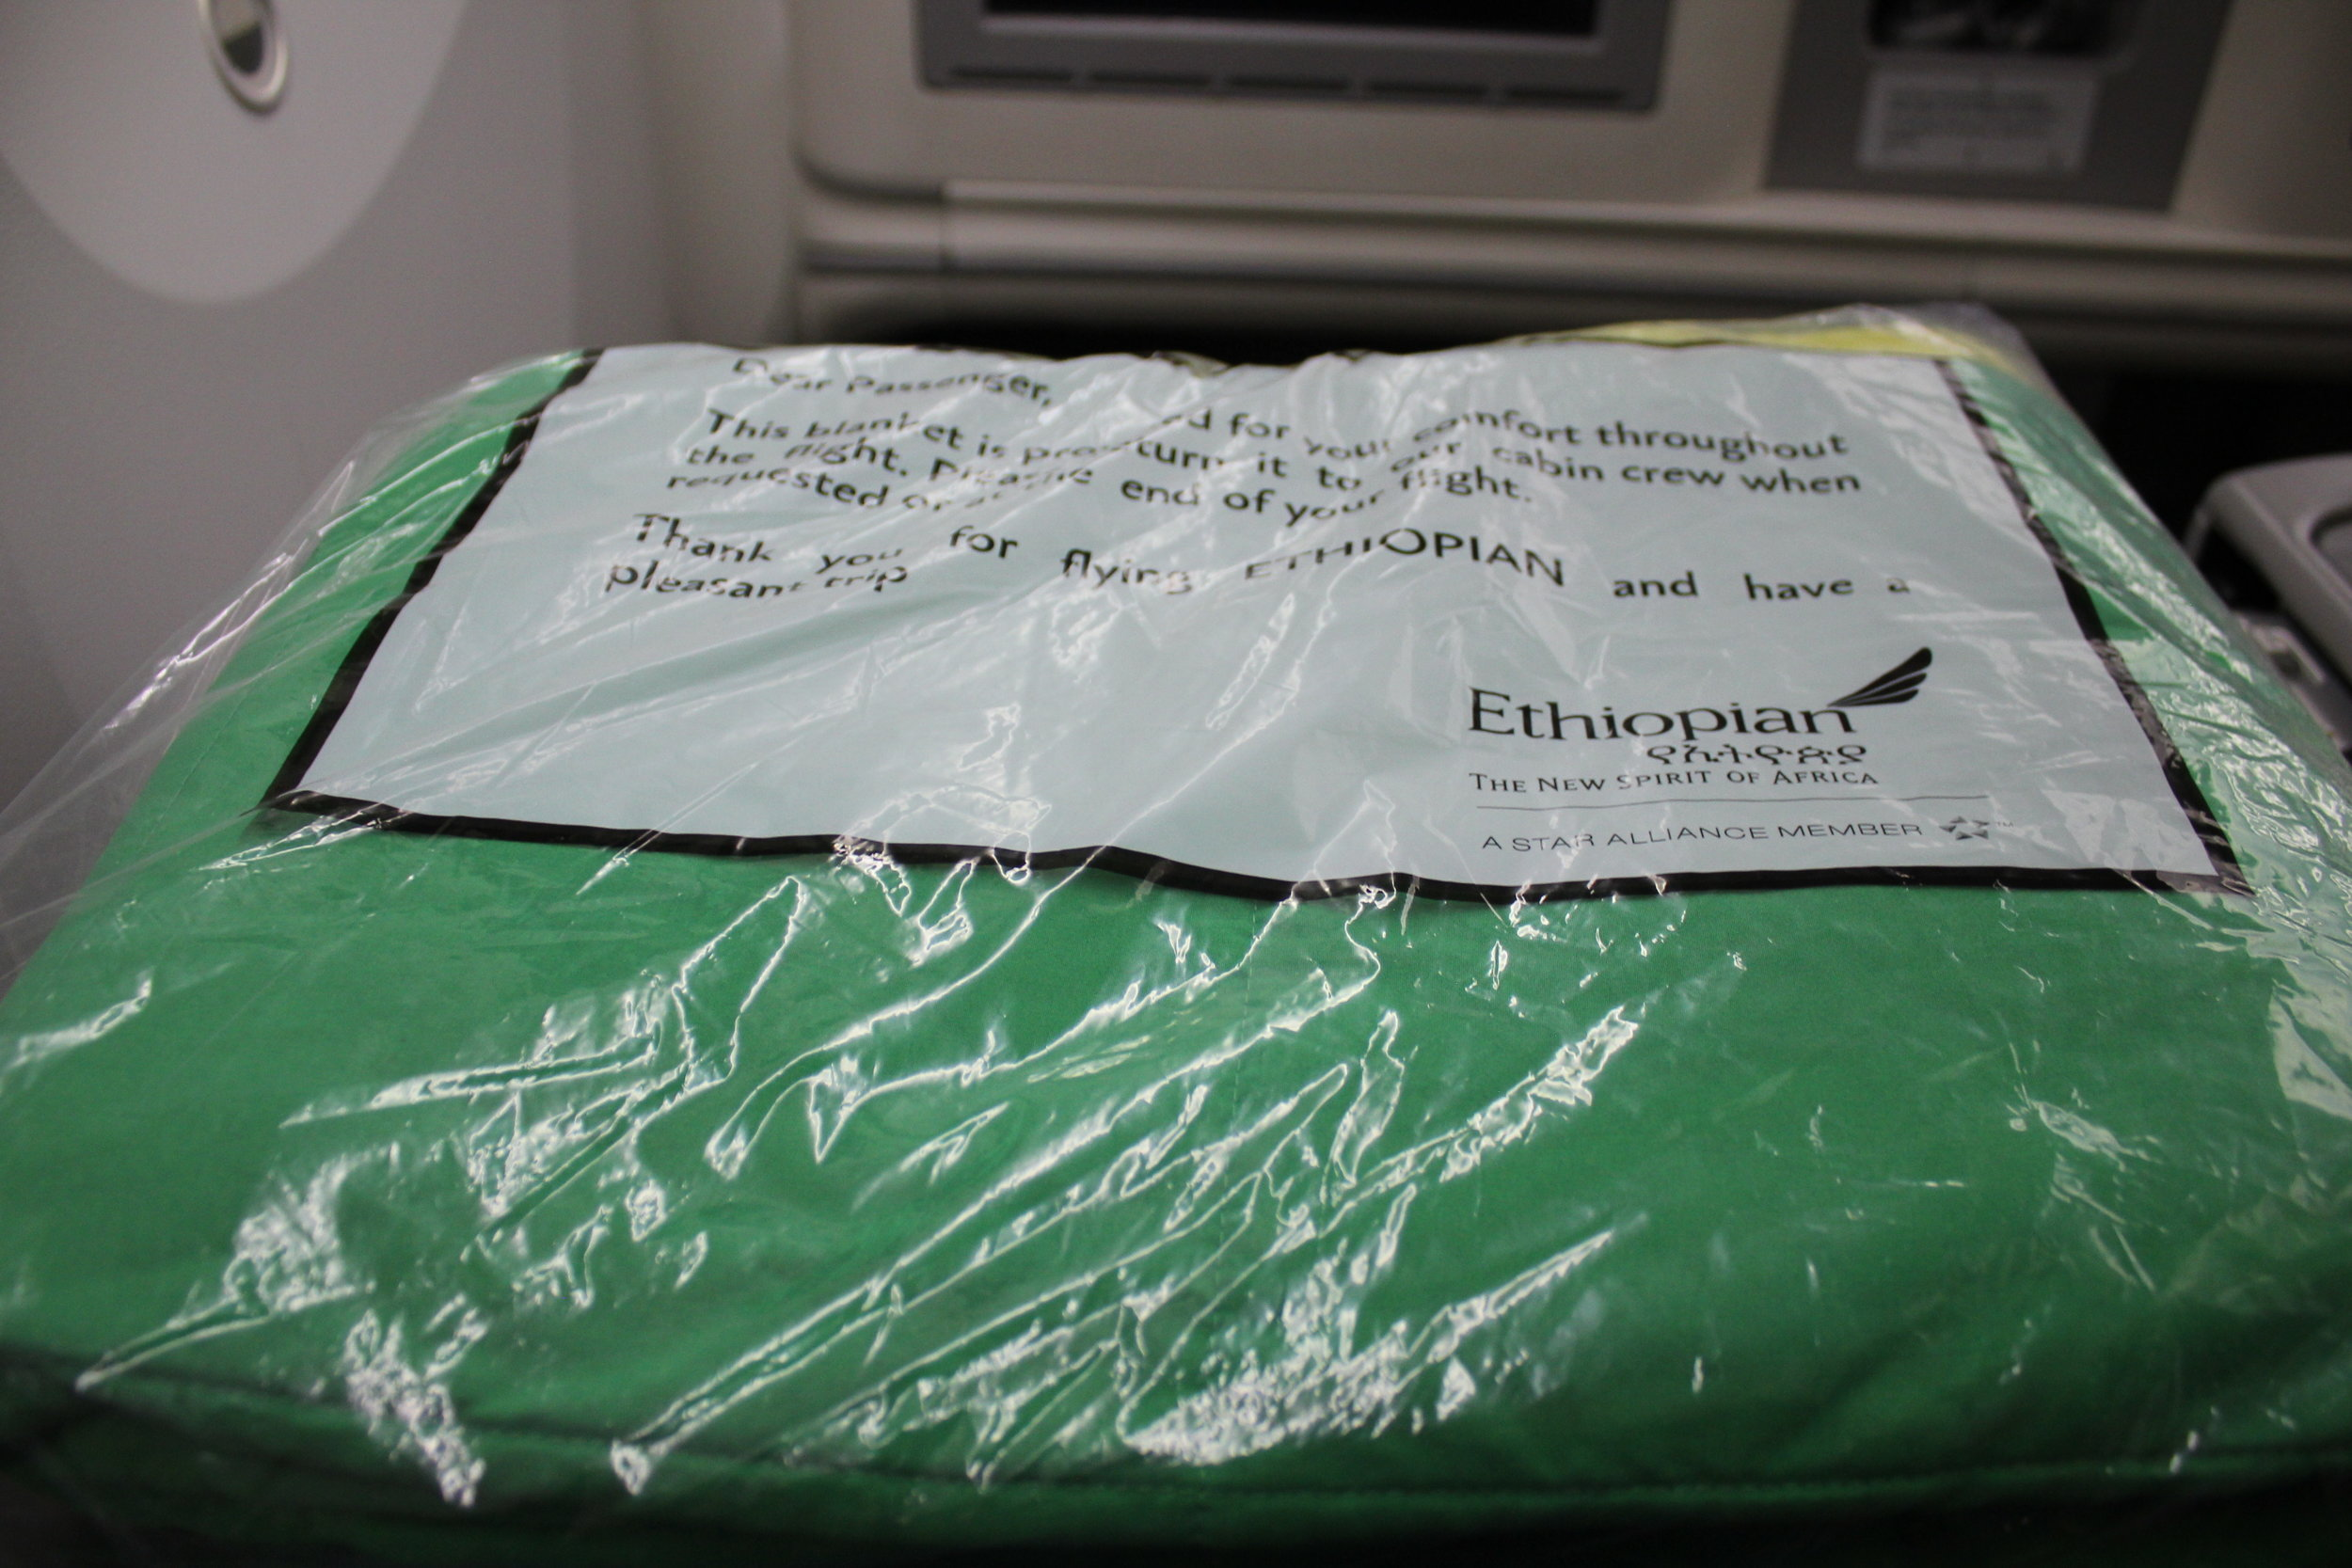 Ethiopian Airlines business class – Blanket